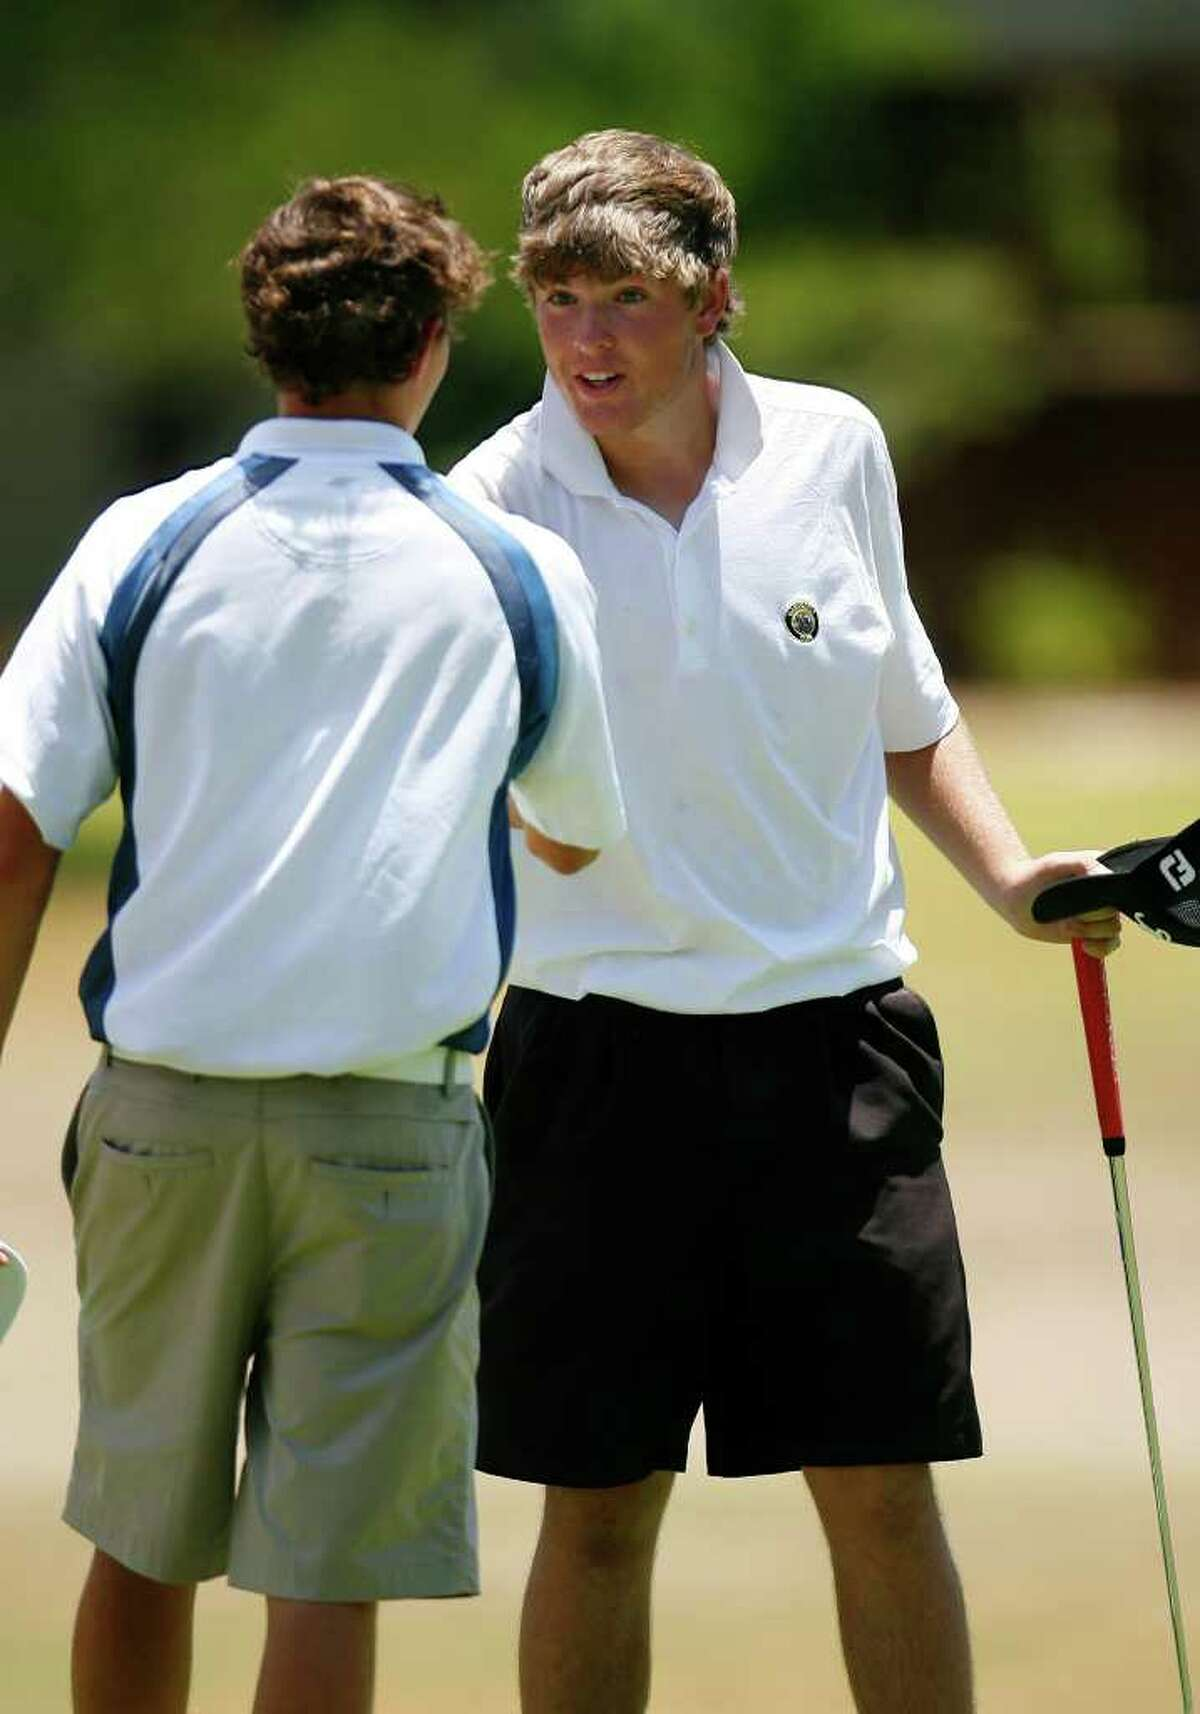 Matt Gilchrest, left, shakes hands with Brandon Pierce after the final round of the Genesis Shootout Thursday, July 24, 2011 at the Fair Oaks Ranch Country Club. Kayli Quinton of Houston won the girls division andGilchrest took the boys division. SALLY FINNERAN/sfinneran@express-news.net